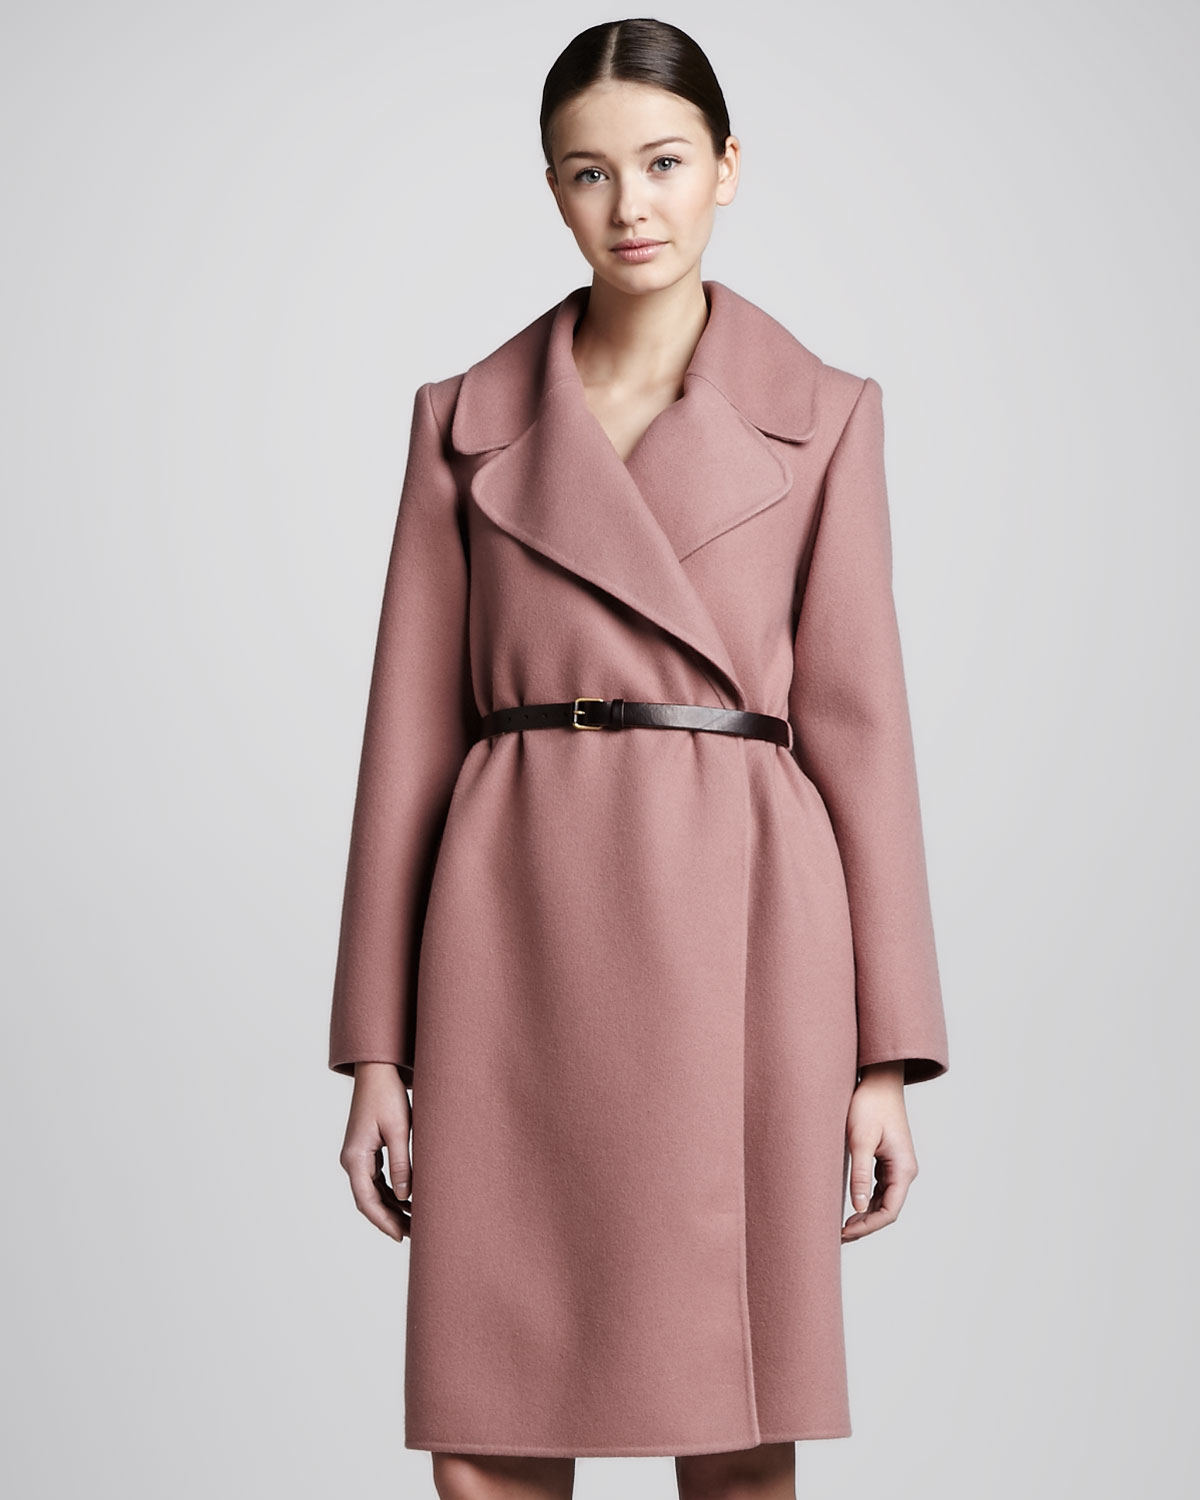 Marc jacobs Doubleface Cashmere Coat Rose in Pink | Lyst